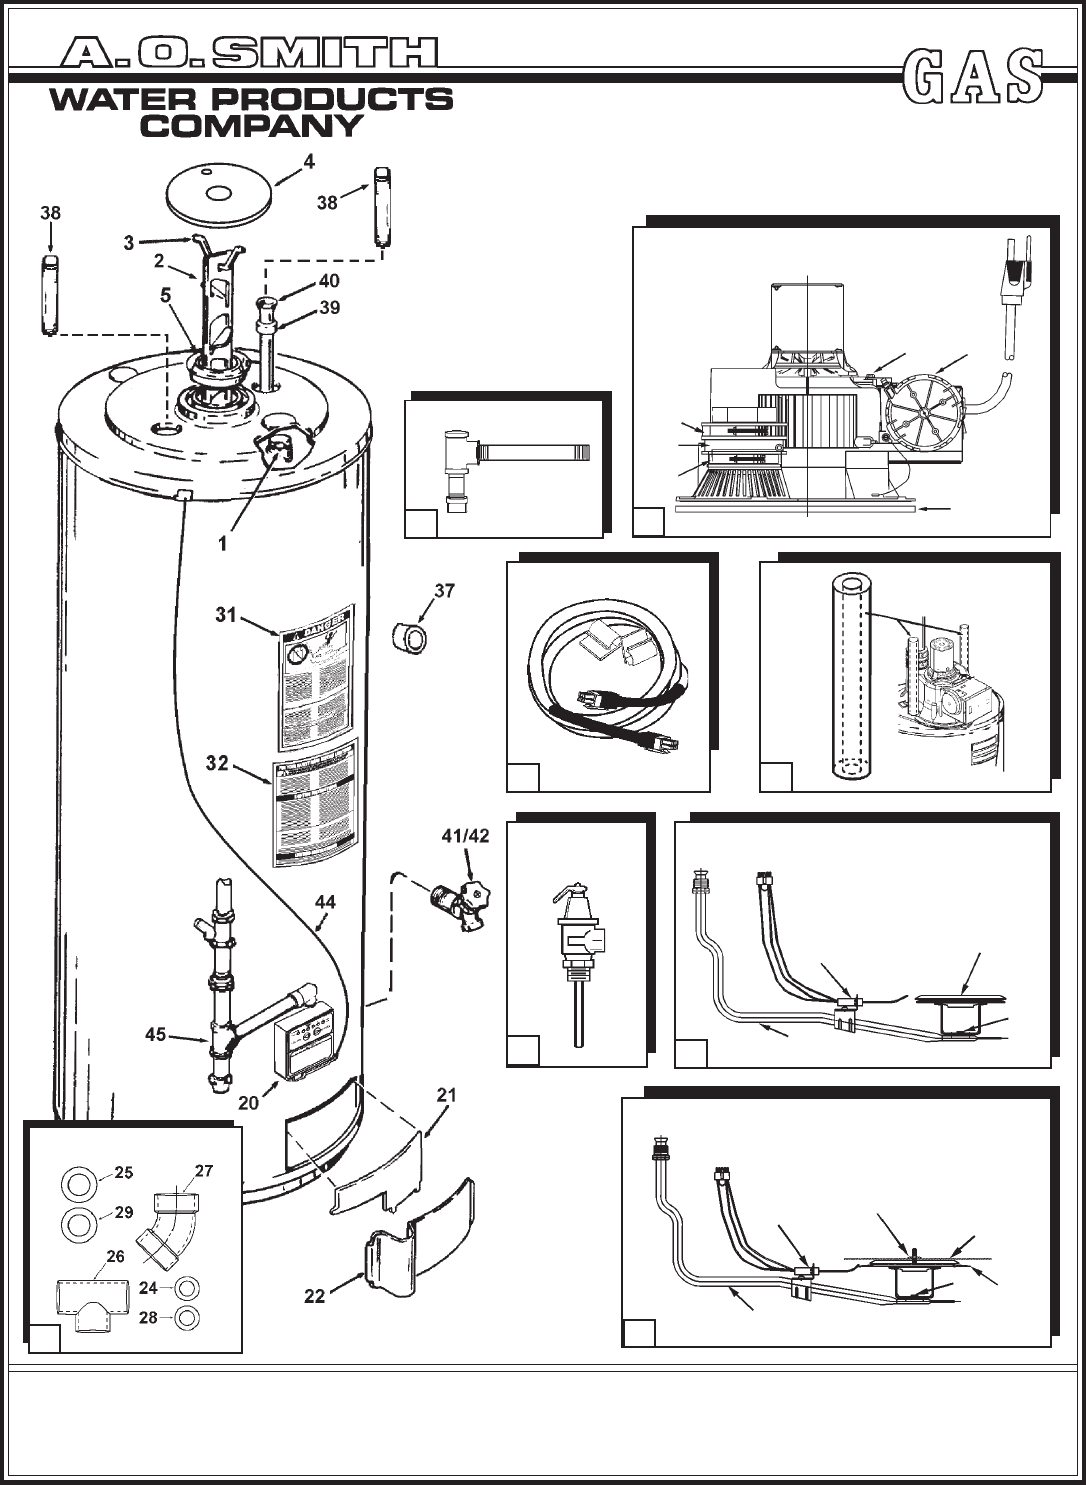 989b04a4 7033 4937 ad81 ef5a5cd16225 bg1 a o smith water heater 100 series user guide manualsonline com ao smith water heater wiring diagram at nearapp.co